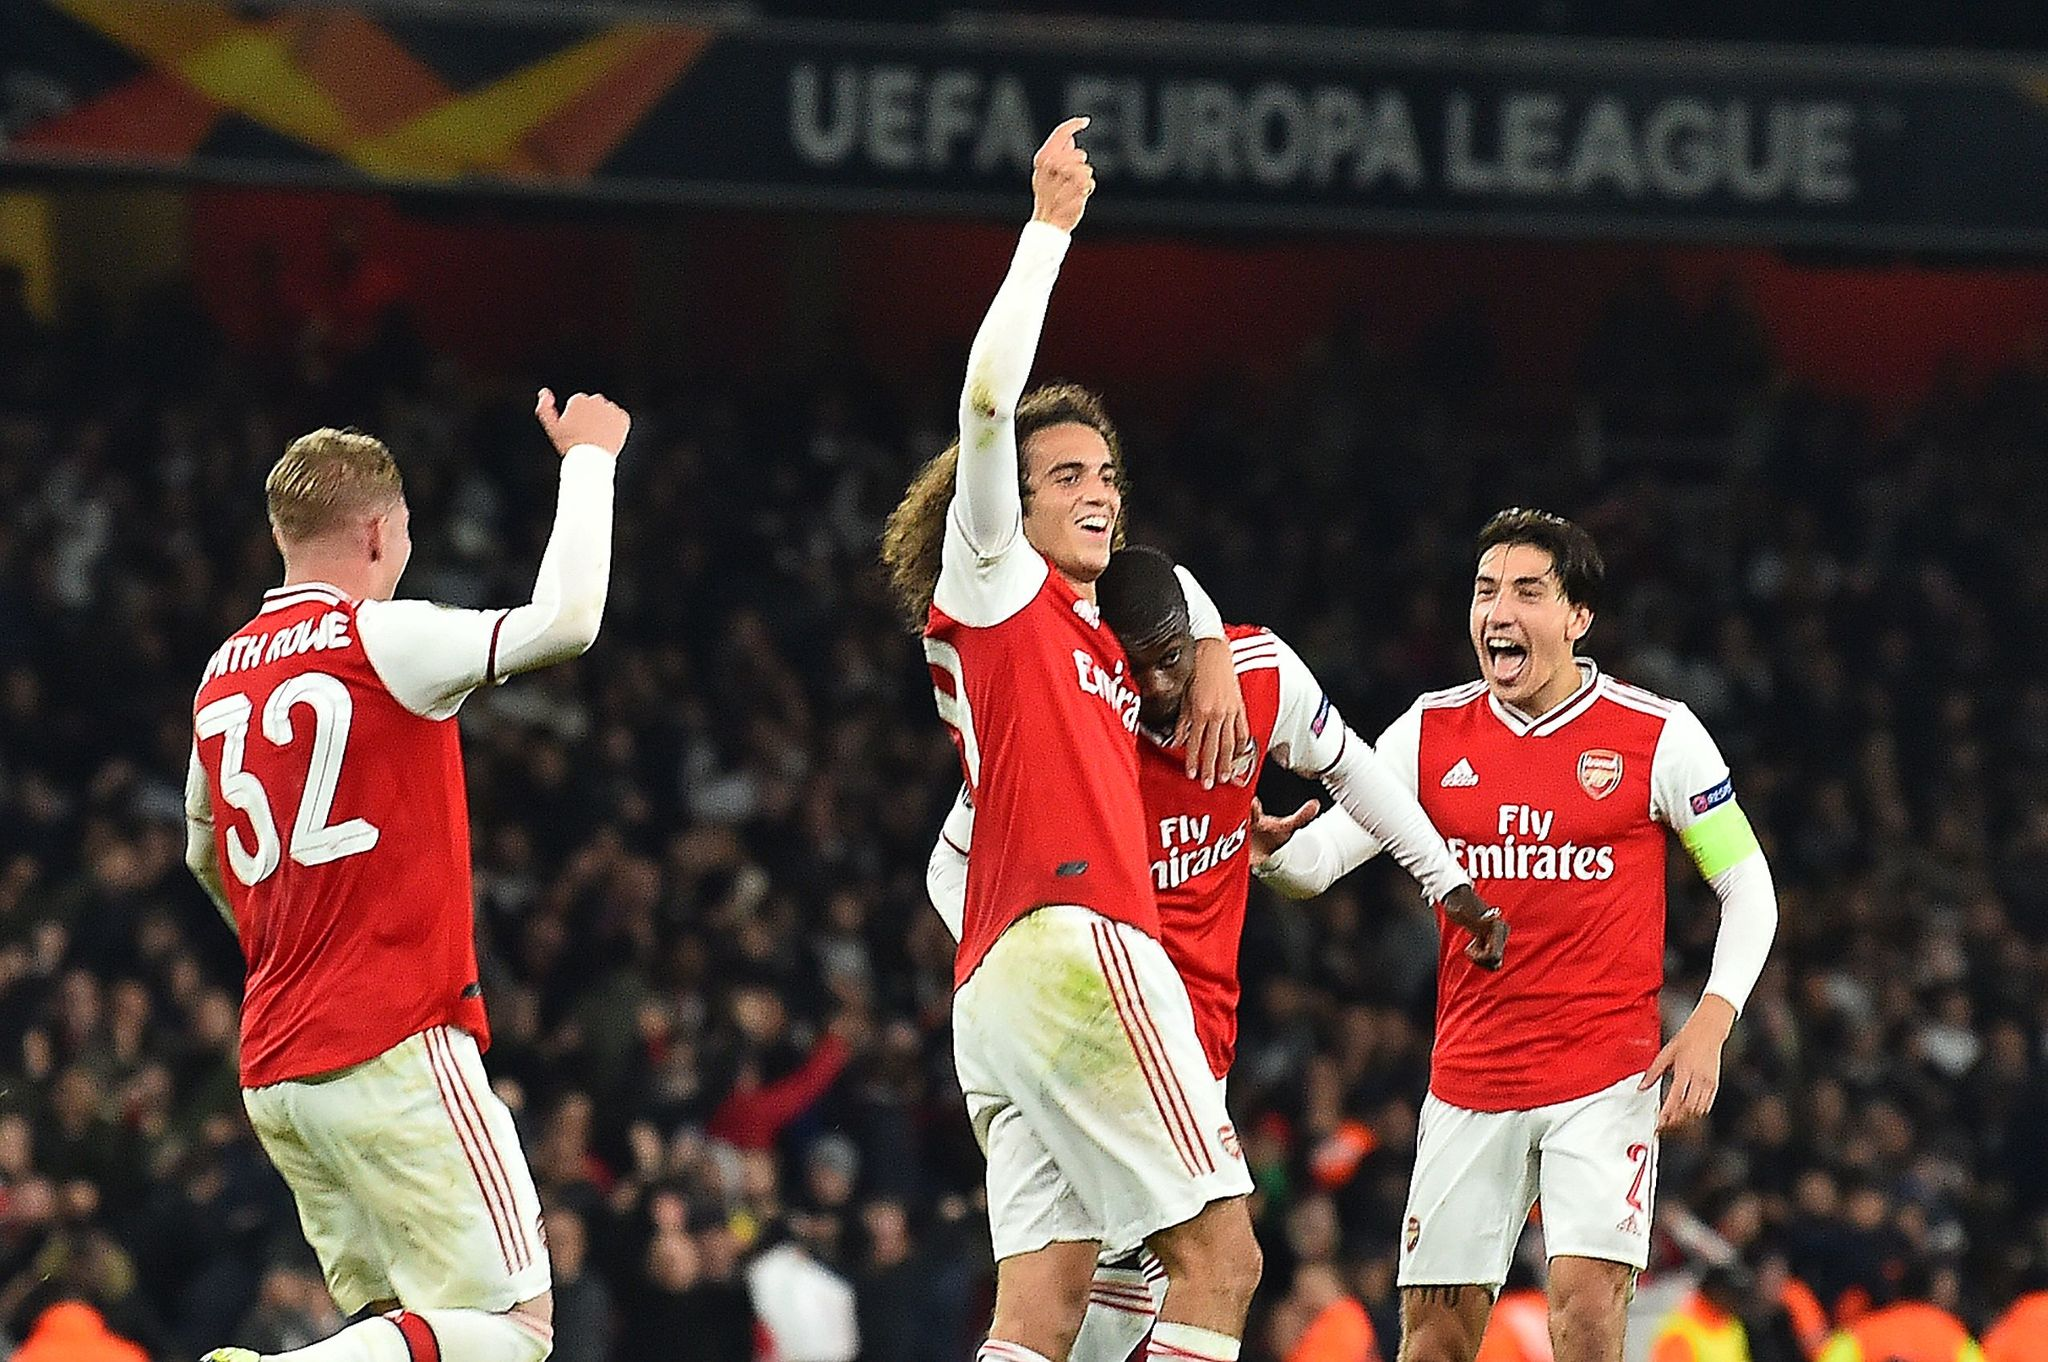 <HIT>Arsenal</HIT>s French-born Ivorian midfielder Nicolas Pepe (2R) celebrates scoring his teams third goal during their UEFA Europa league Group F football match between <HIT>Arsenal</HIT> and Vitoria Guimaraes at the Emirates stadium in London on October 24, 2019. (Photo by Glyn KIRK / AFP)